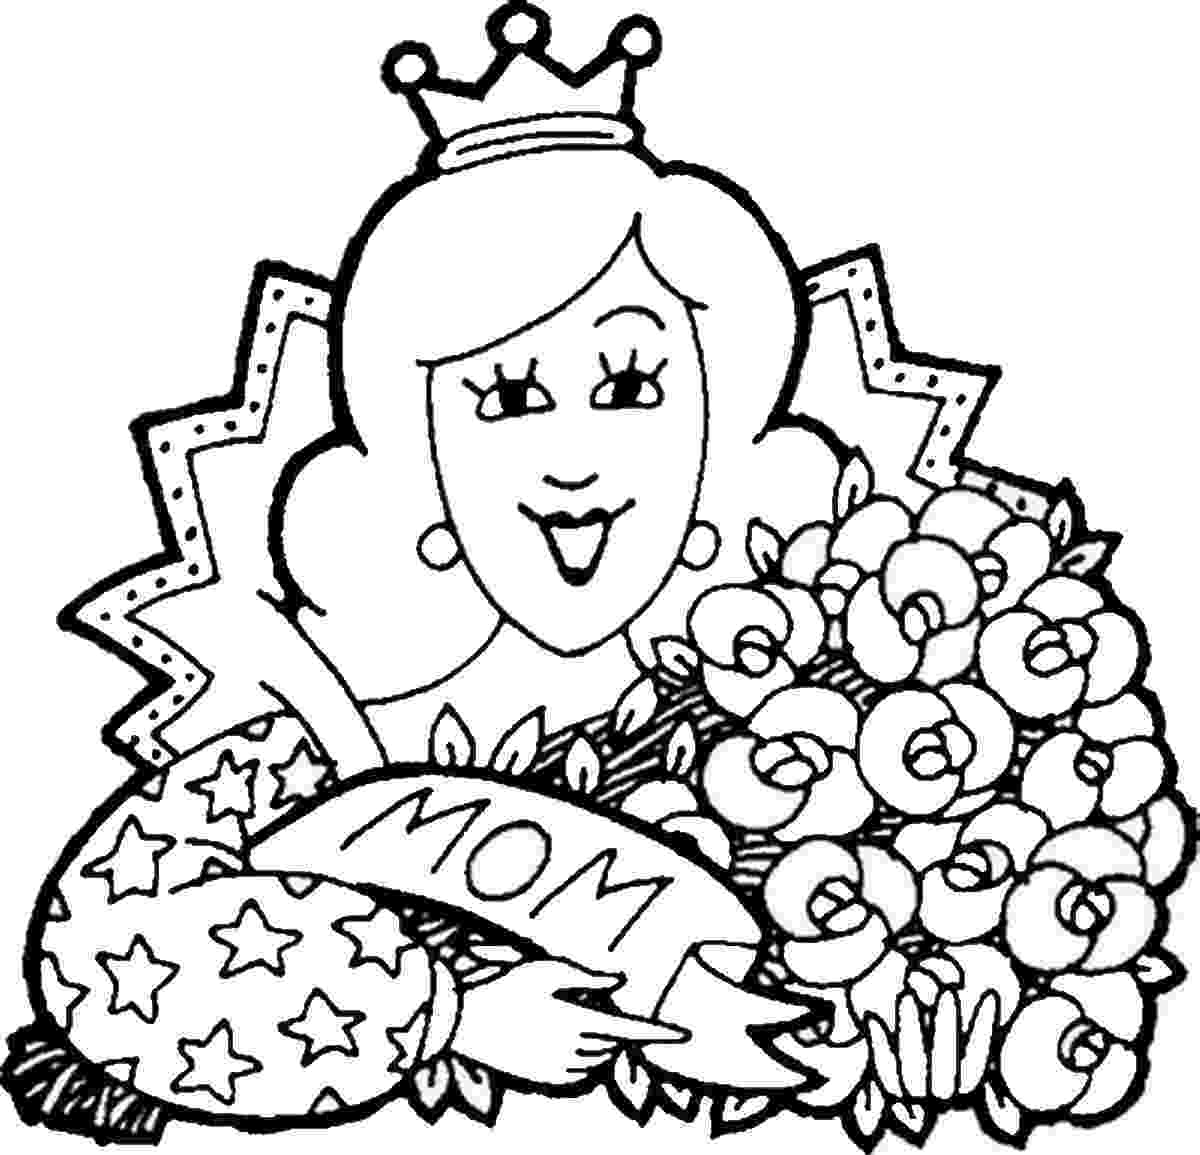 mothers day coloring pages wallpaper free download happy mothers day coloring pages day pages coloring mothers